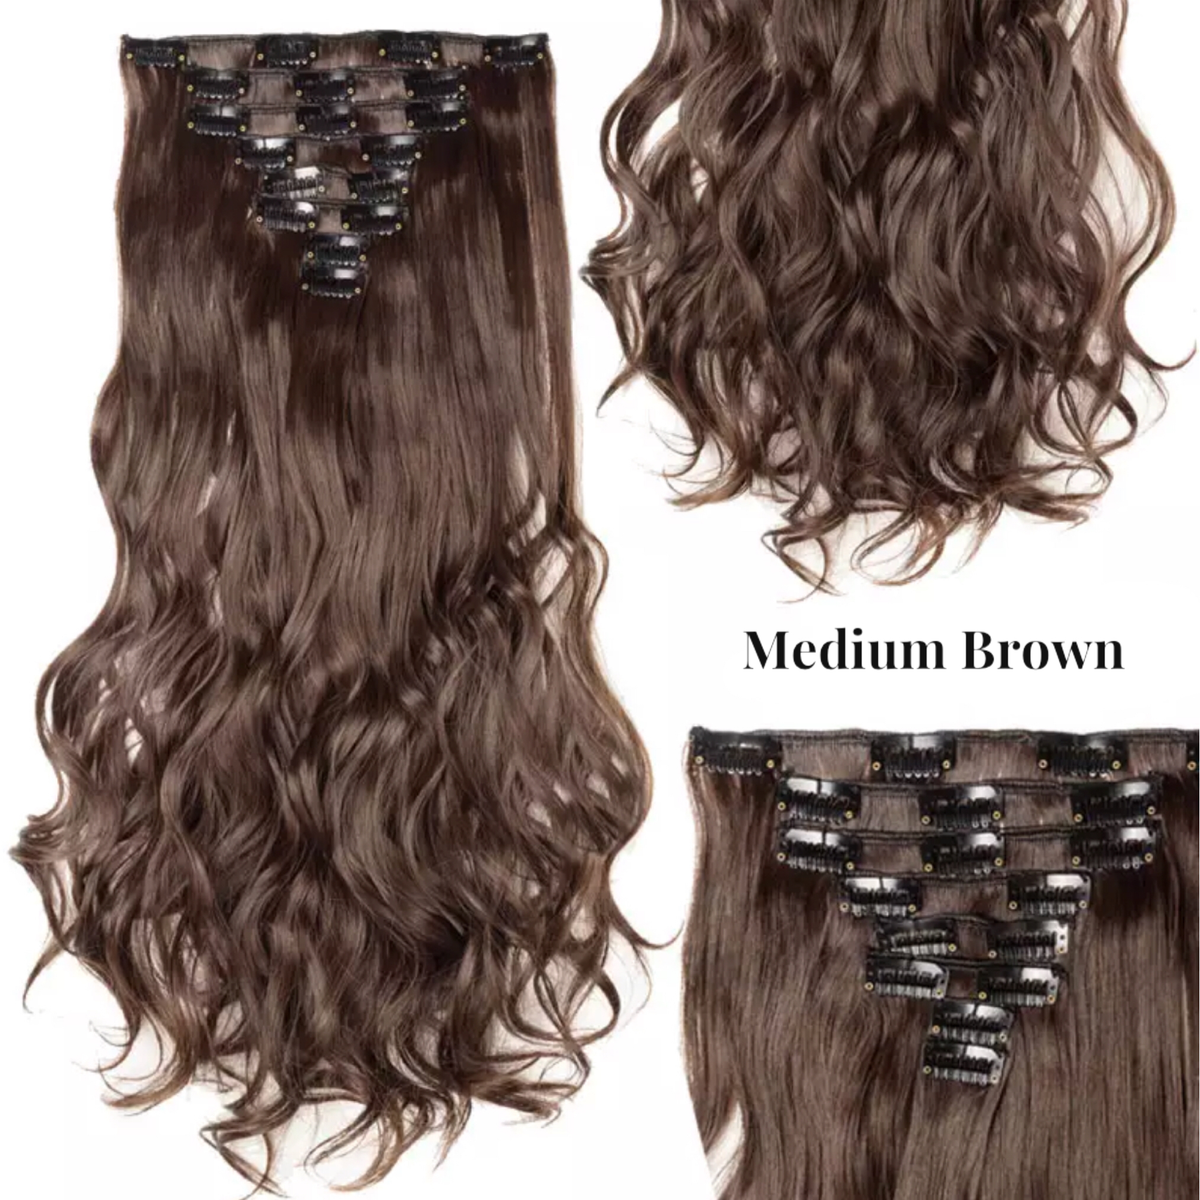 Lexi Noel Beauty 8 Piece 16 Clip In Hair Synthetic Extensions - lexinoelbeauty.com